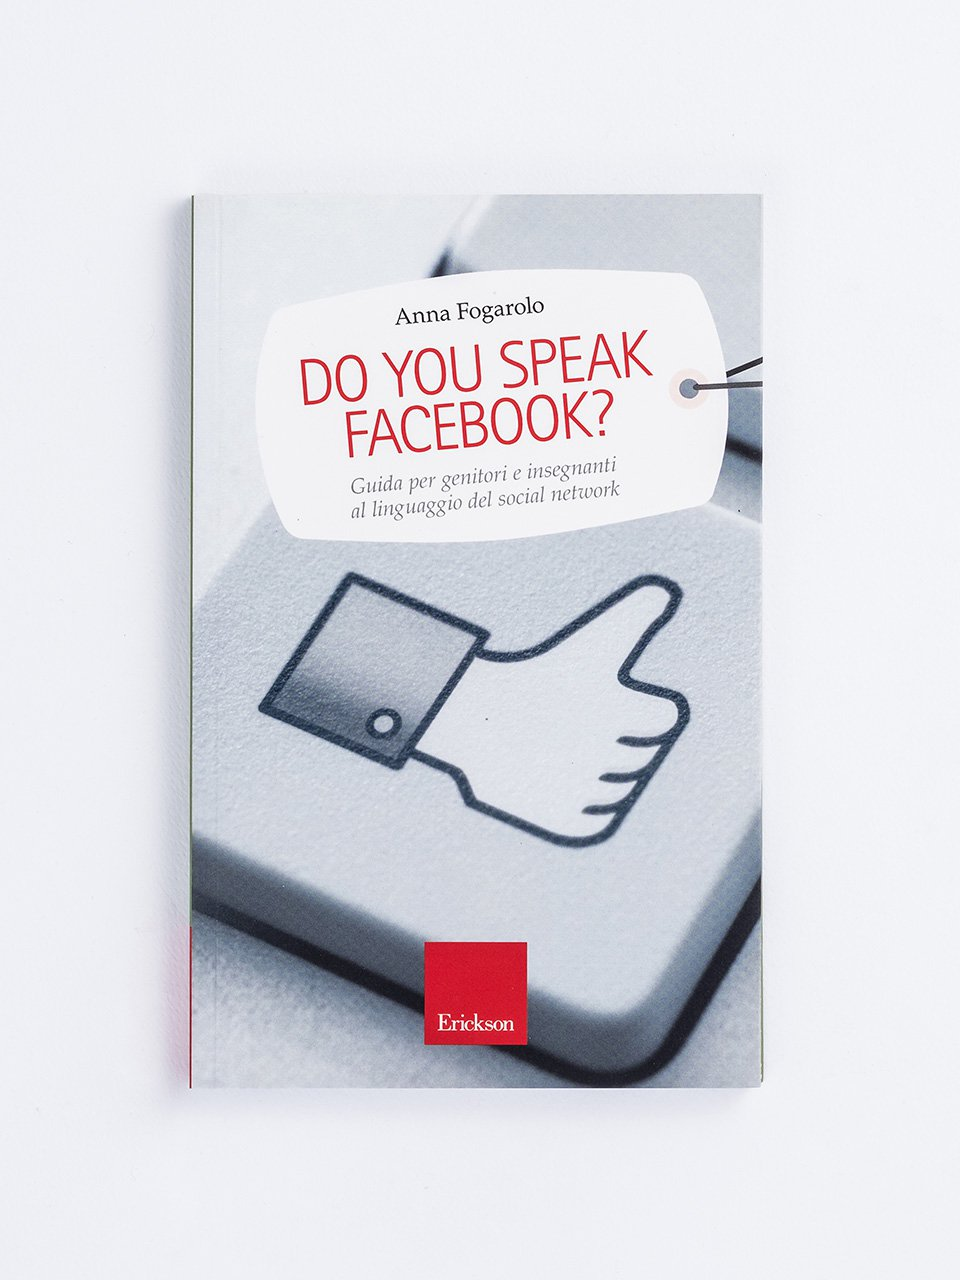 Do you speak Facebook? - Come i bambini - Libri - Erickson